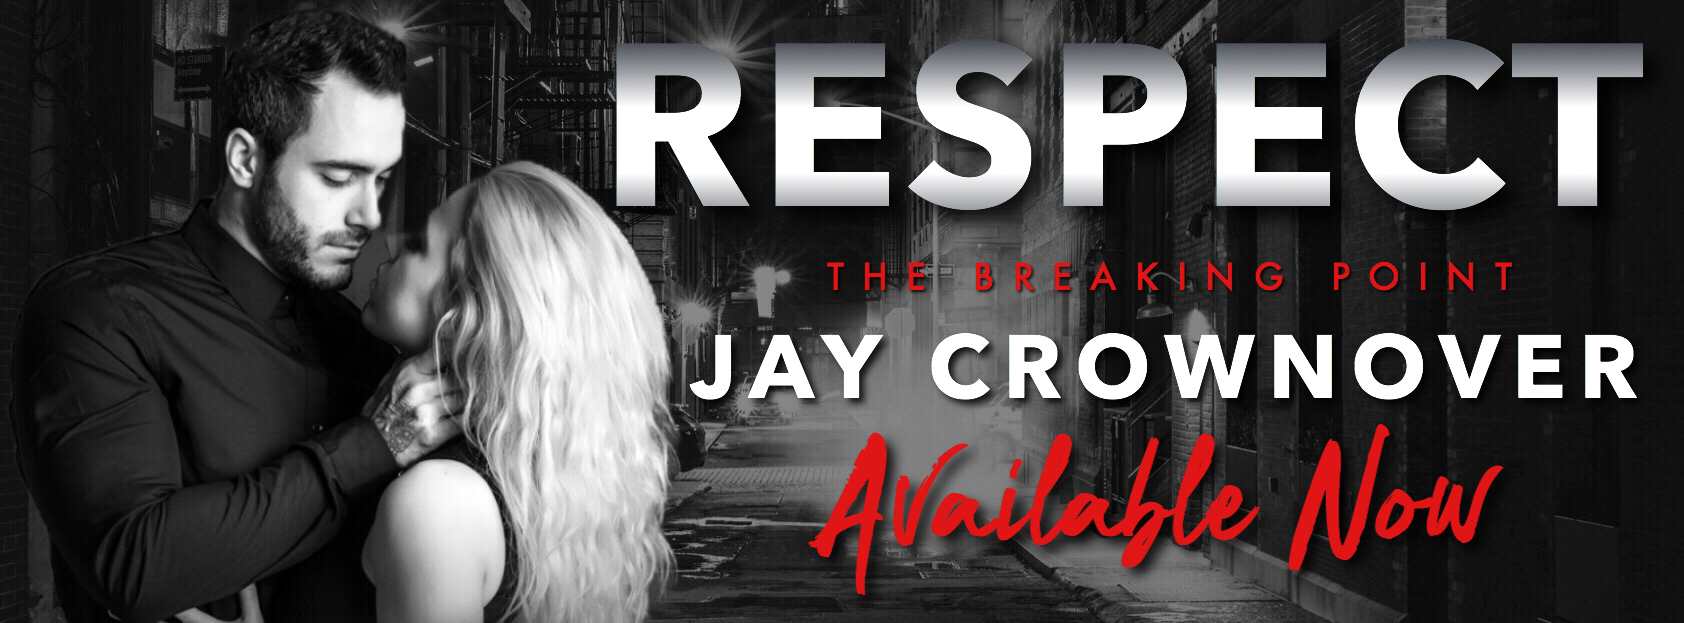 Blog Tour: Respect by Jay Crownover  @JayCrownover @InkSlingerPR